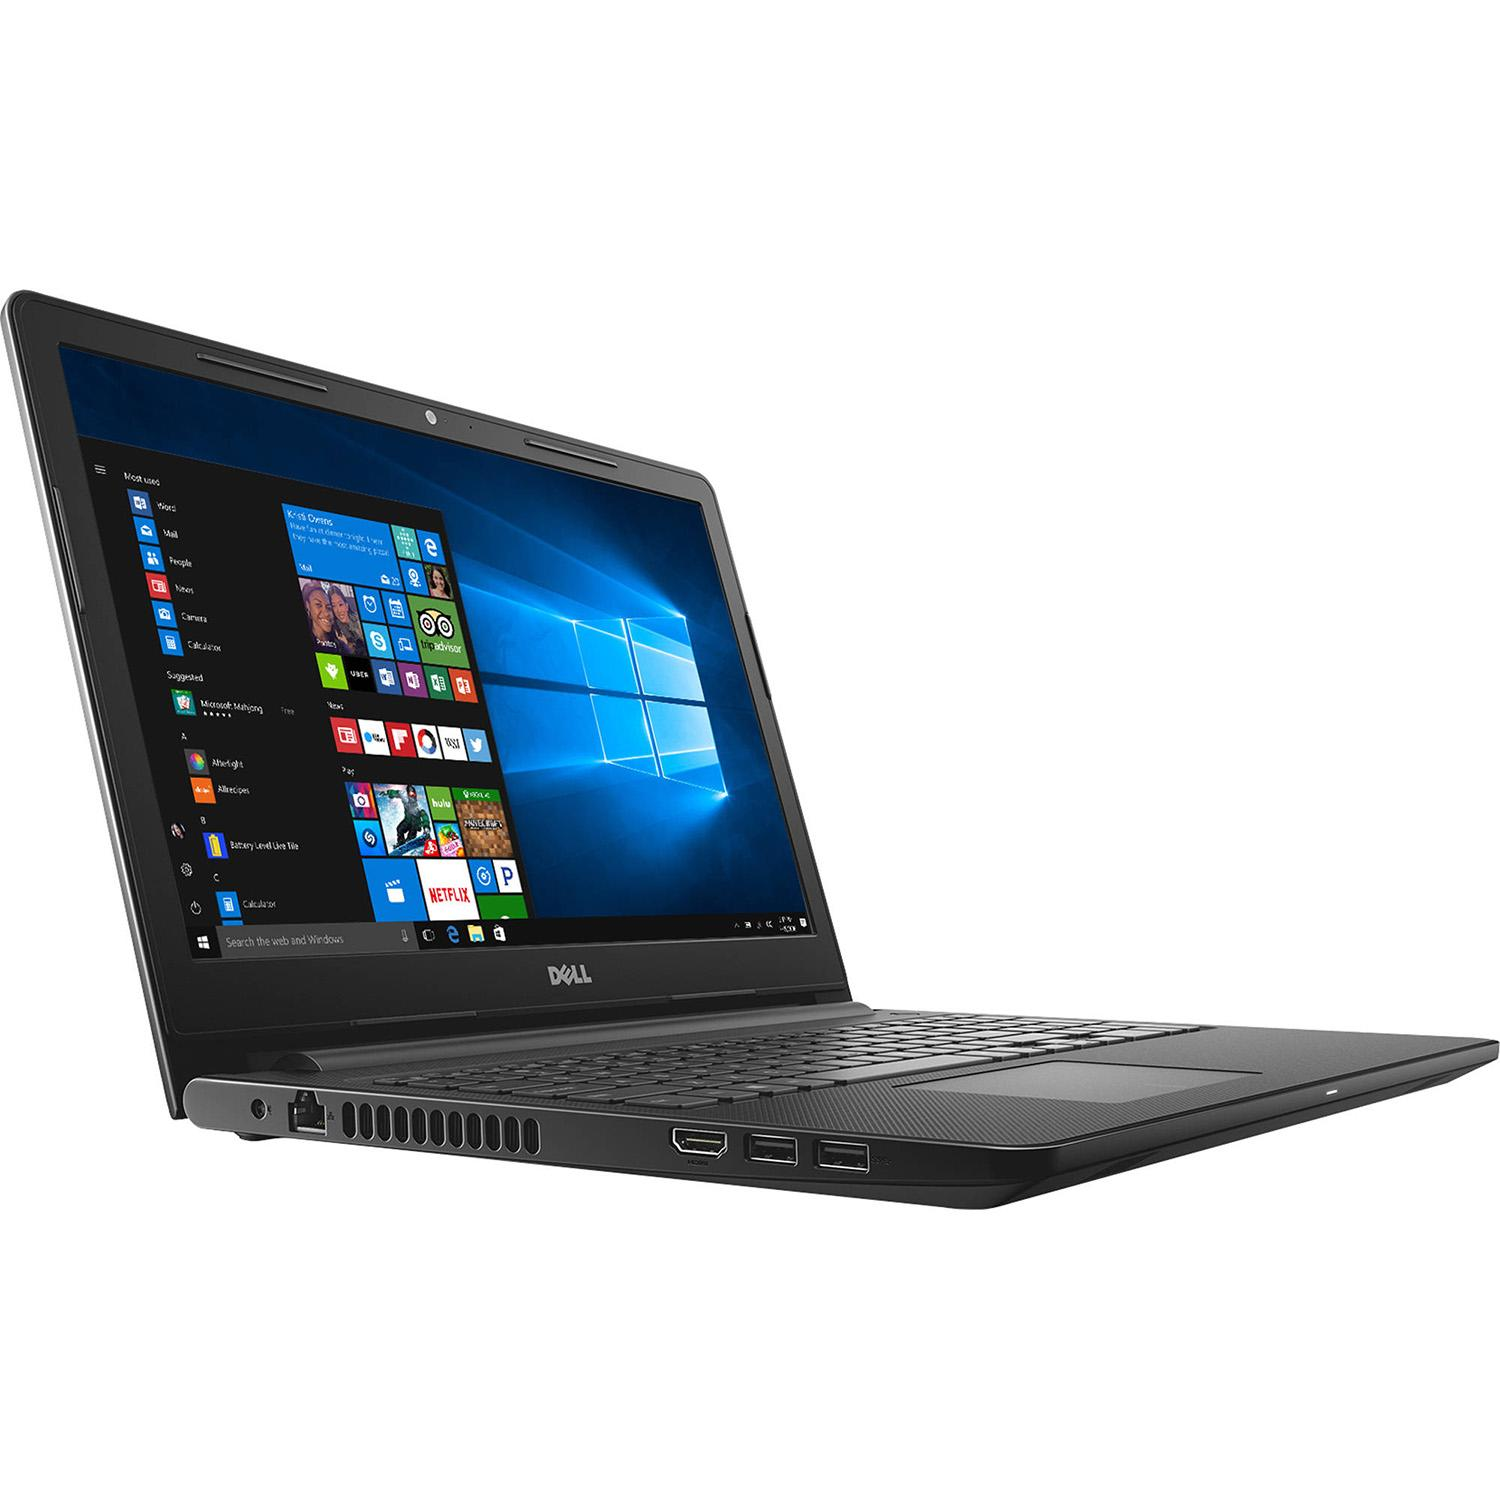 Dell Inspiron 15 3593 laptop prices in Pakistan